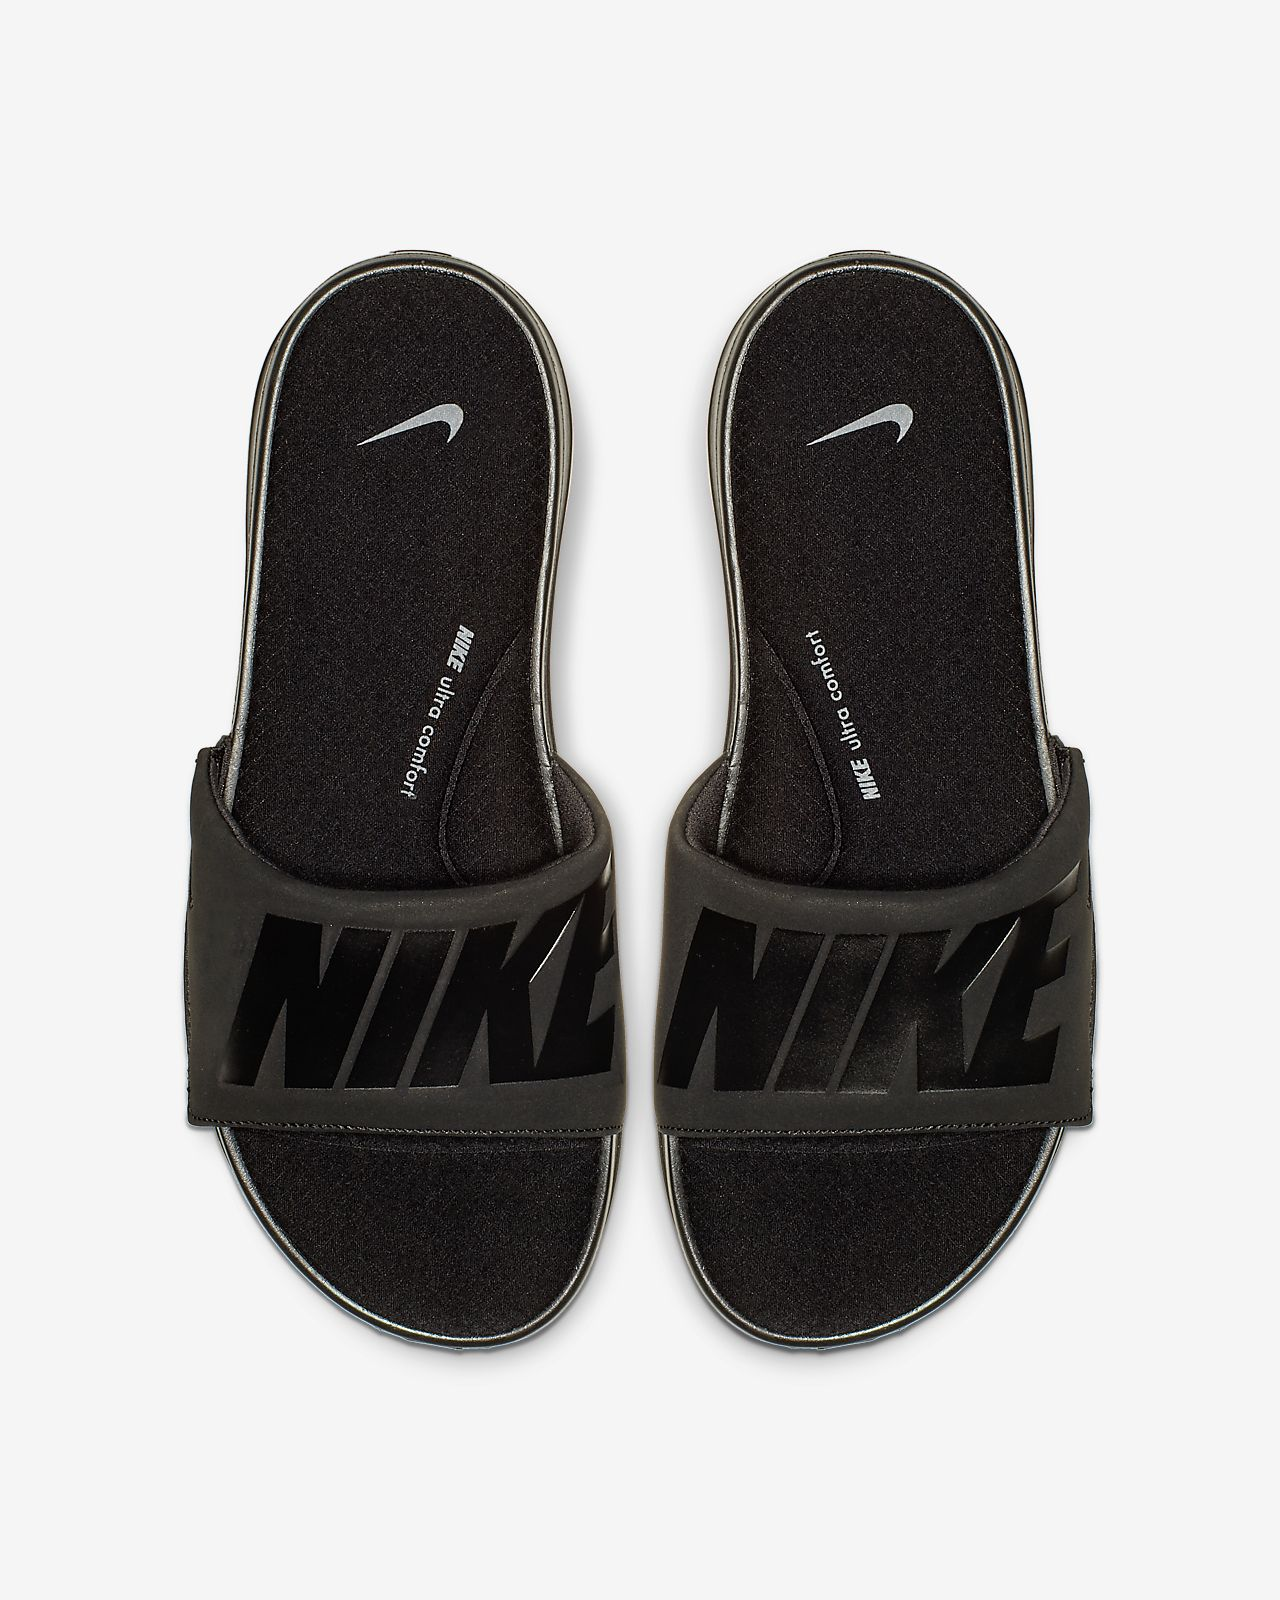 complete in specifications nice shoes how to choose Nike Ultra Comfort 3 Men's Slide